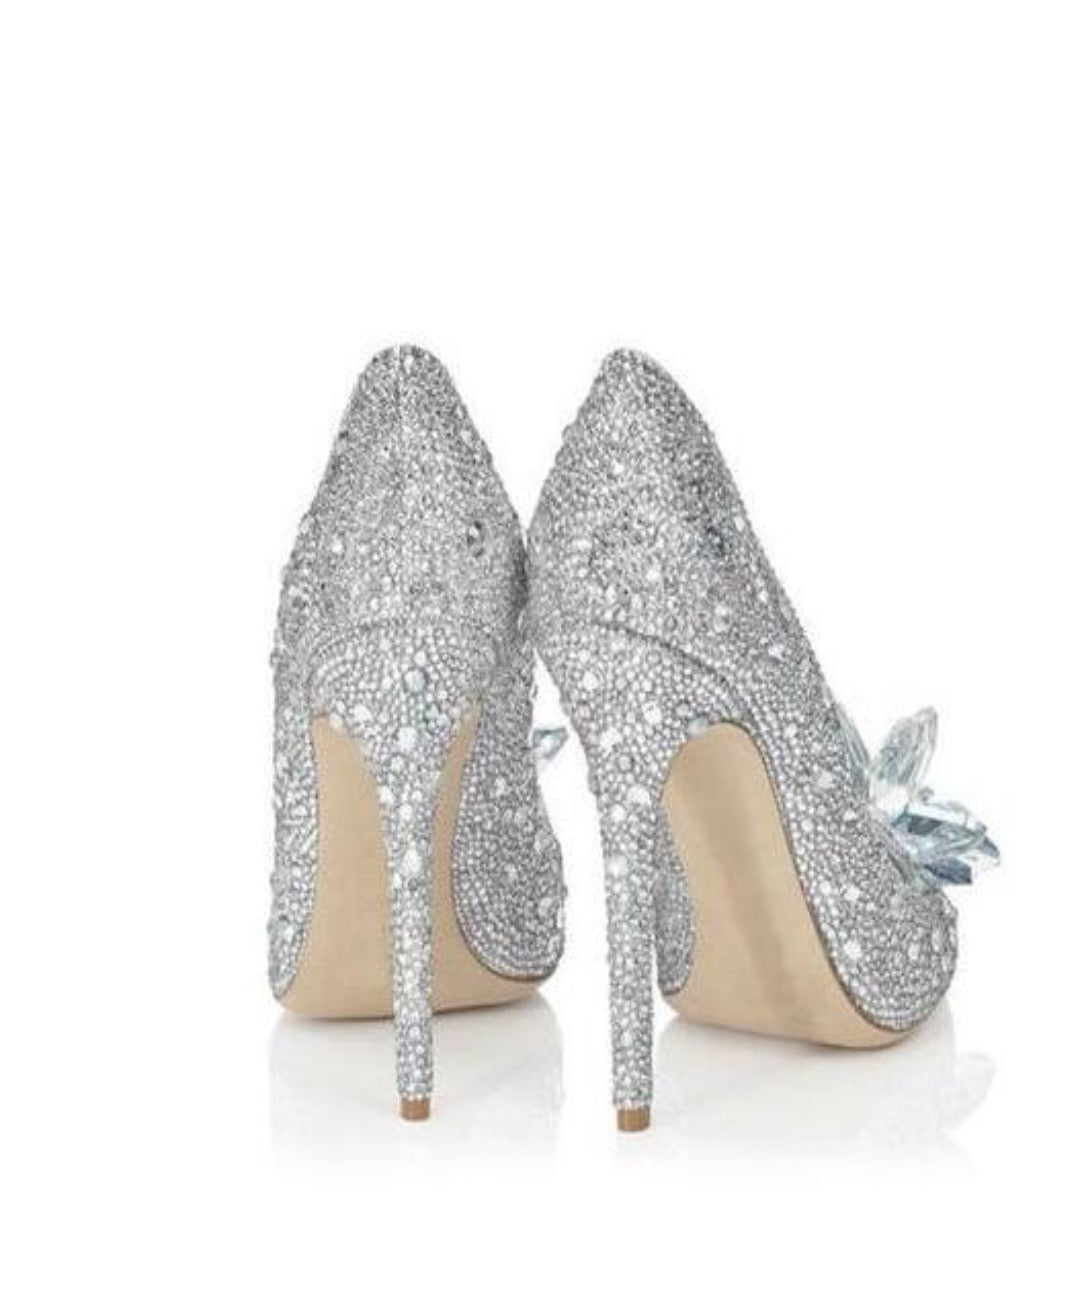 "The ""Cinderella"" Shoes"